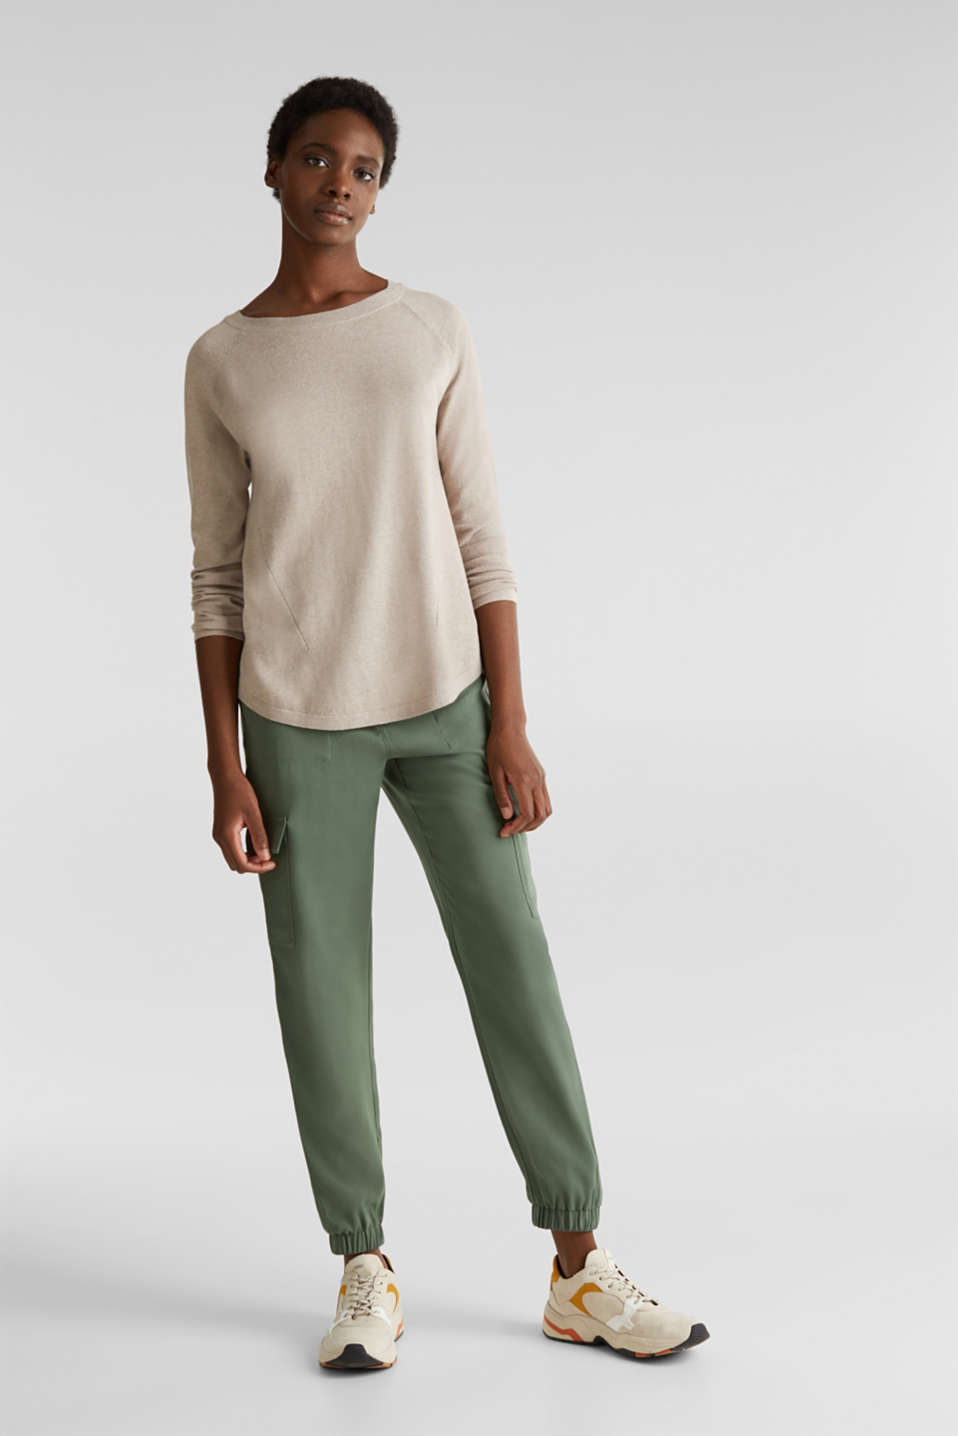 With linen: Jumper with open-work patterned details, BEIGE 5, detail image number 1